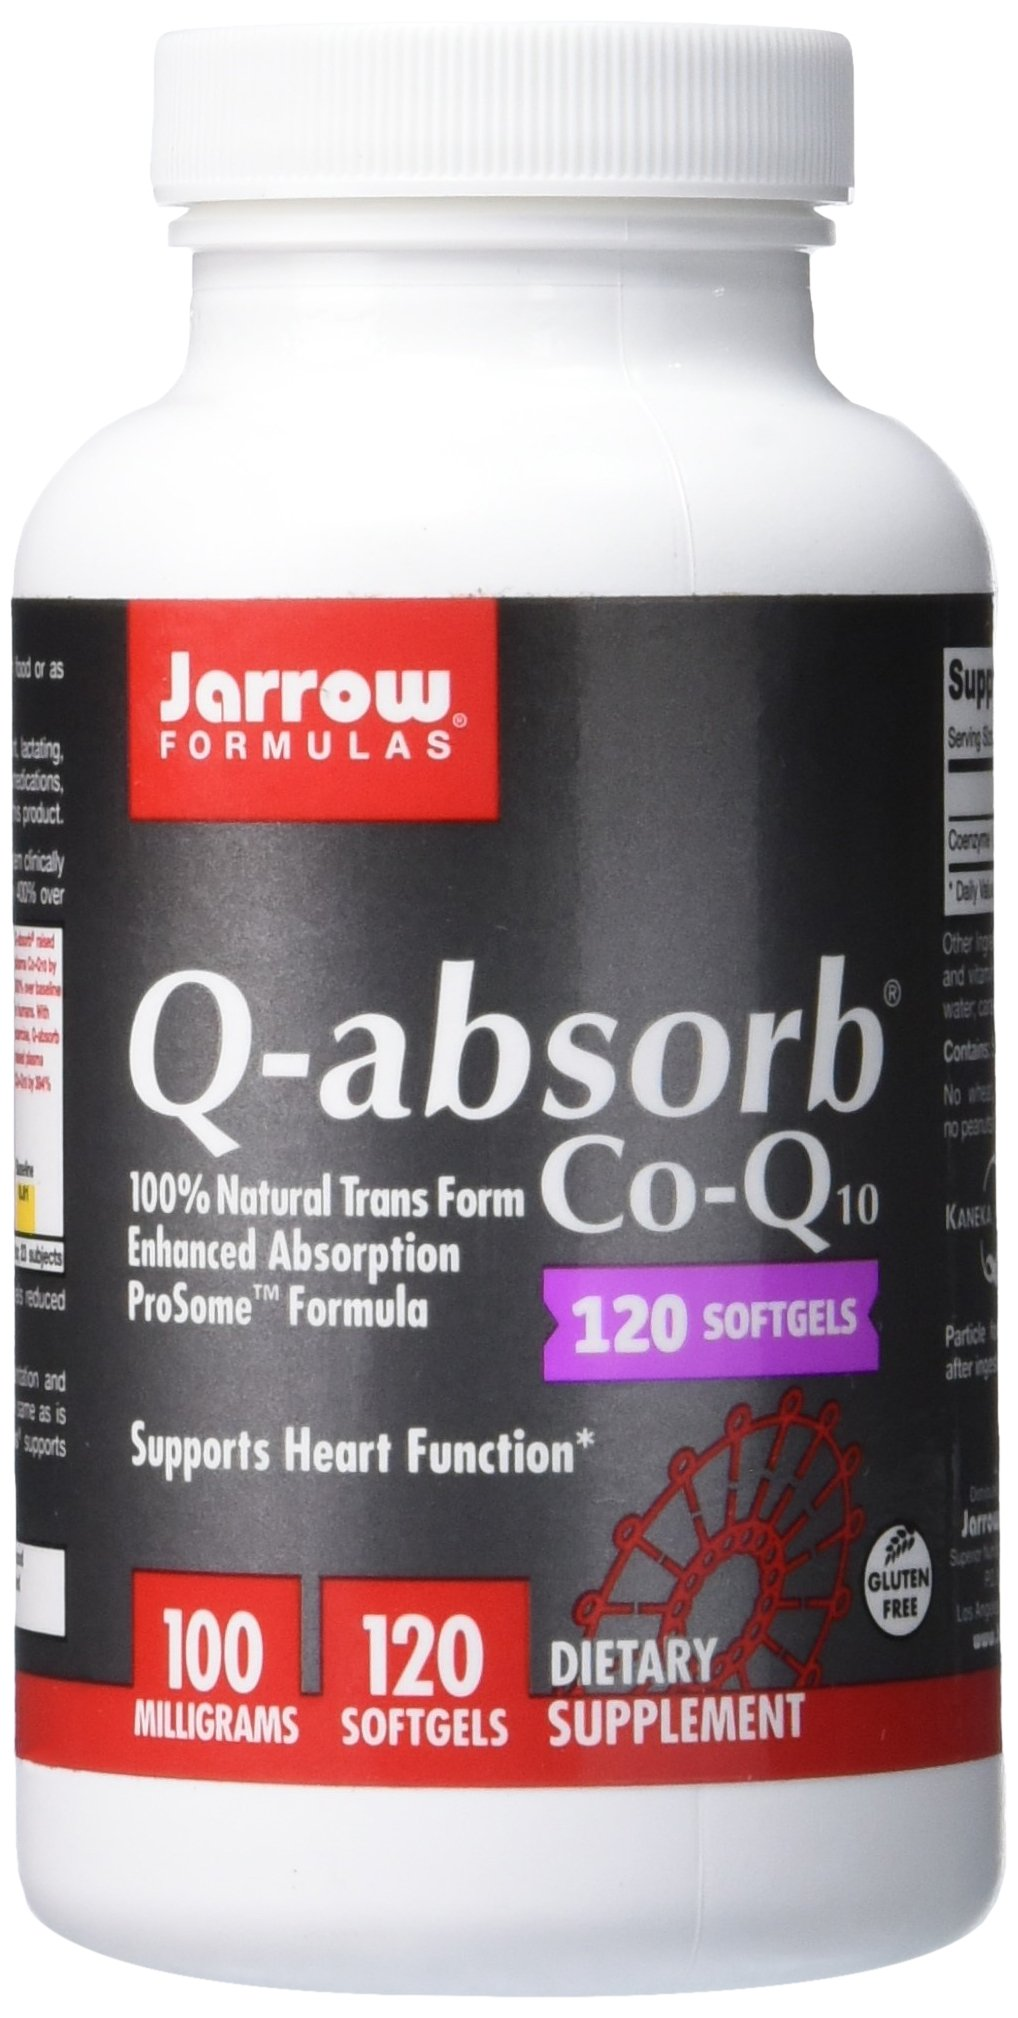 Jarrow Formulas Q-Absorb®, Supports Heart Function*, 100 mg, 120 Softgels